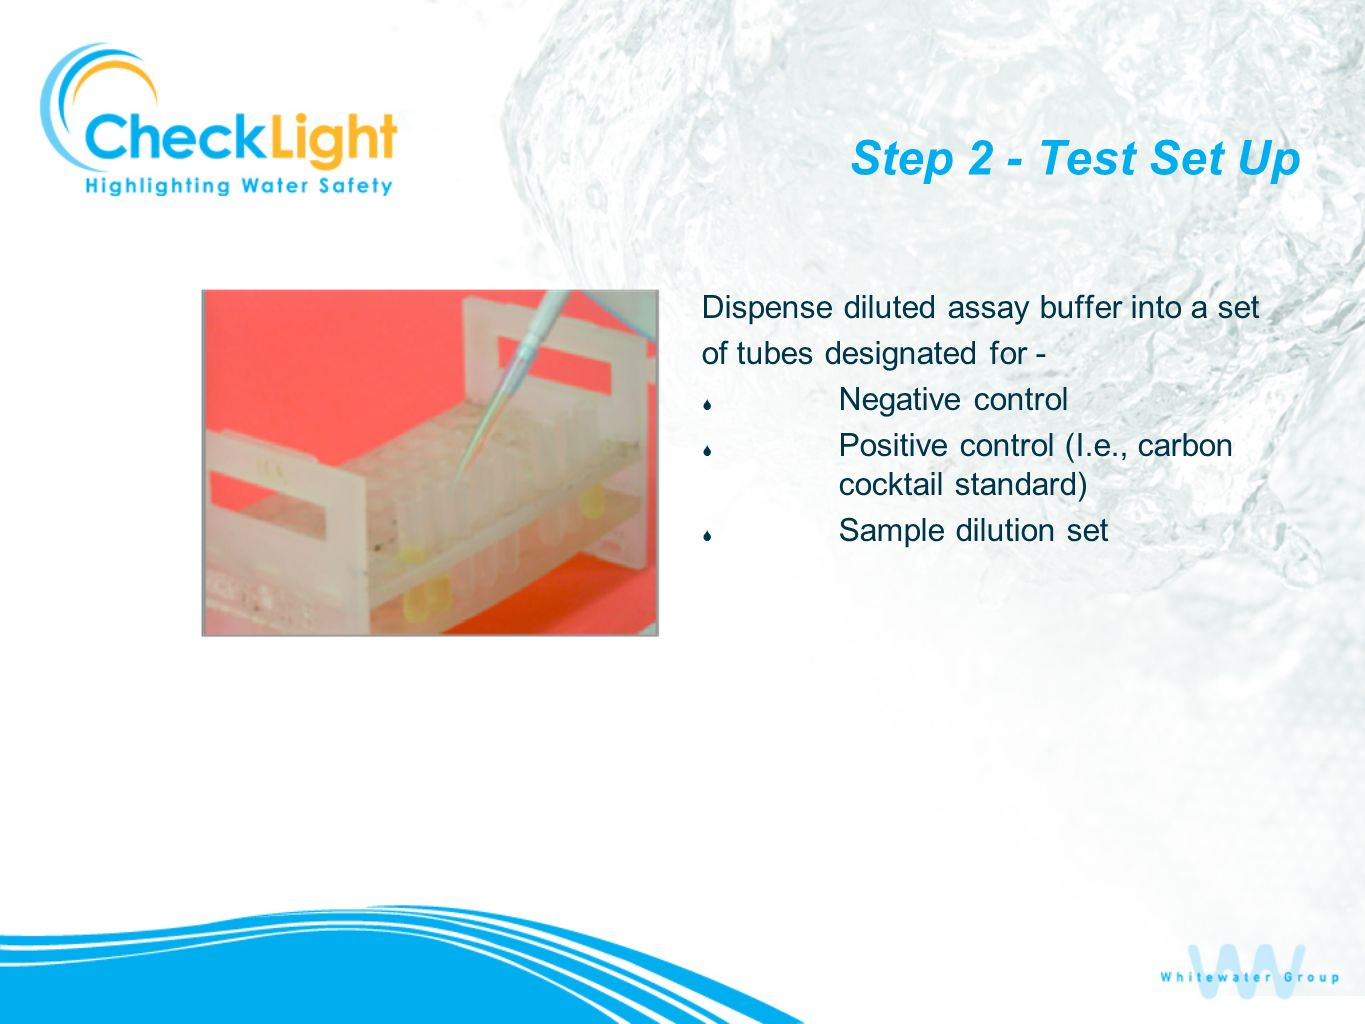 Step 2 - Test Set Up Dispense diluted assay buffer into a set of tubes designated for - Negative control Positive control (I.e., carbon cocktail stand